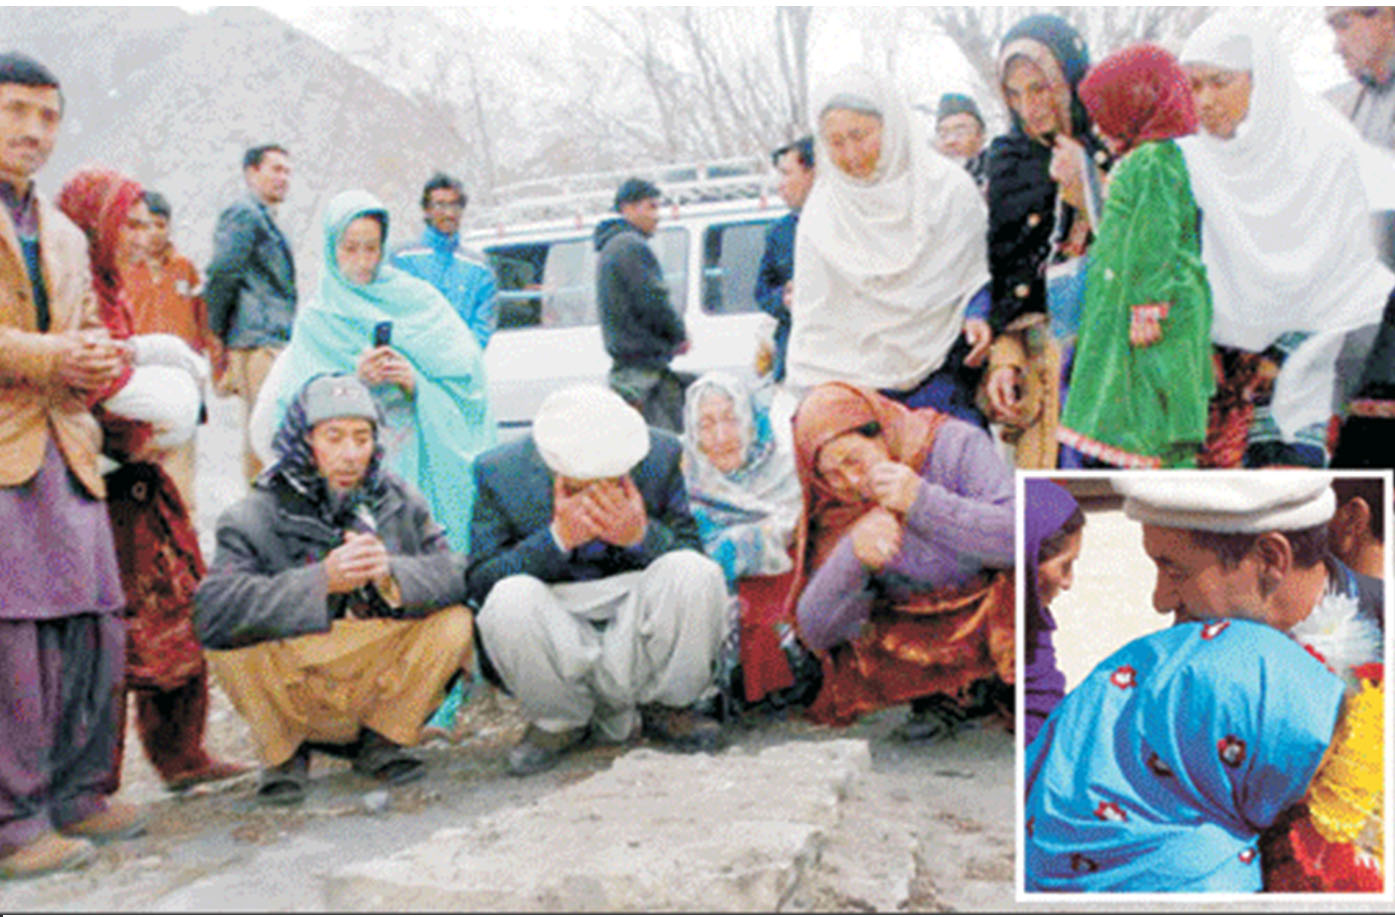 Skardu: Families separated during 1971 war reunite after 43 years